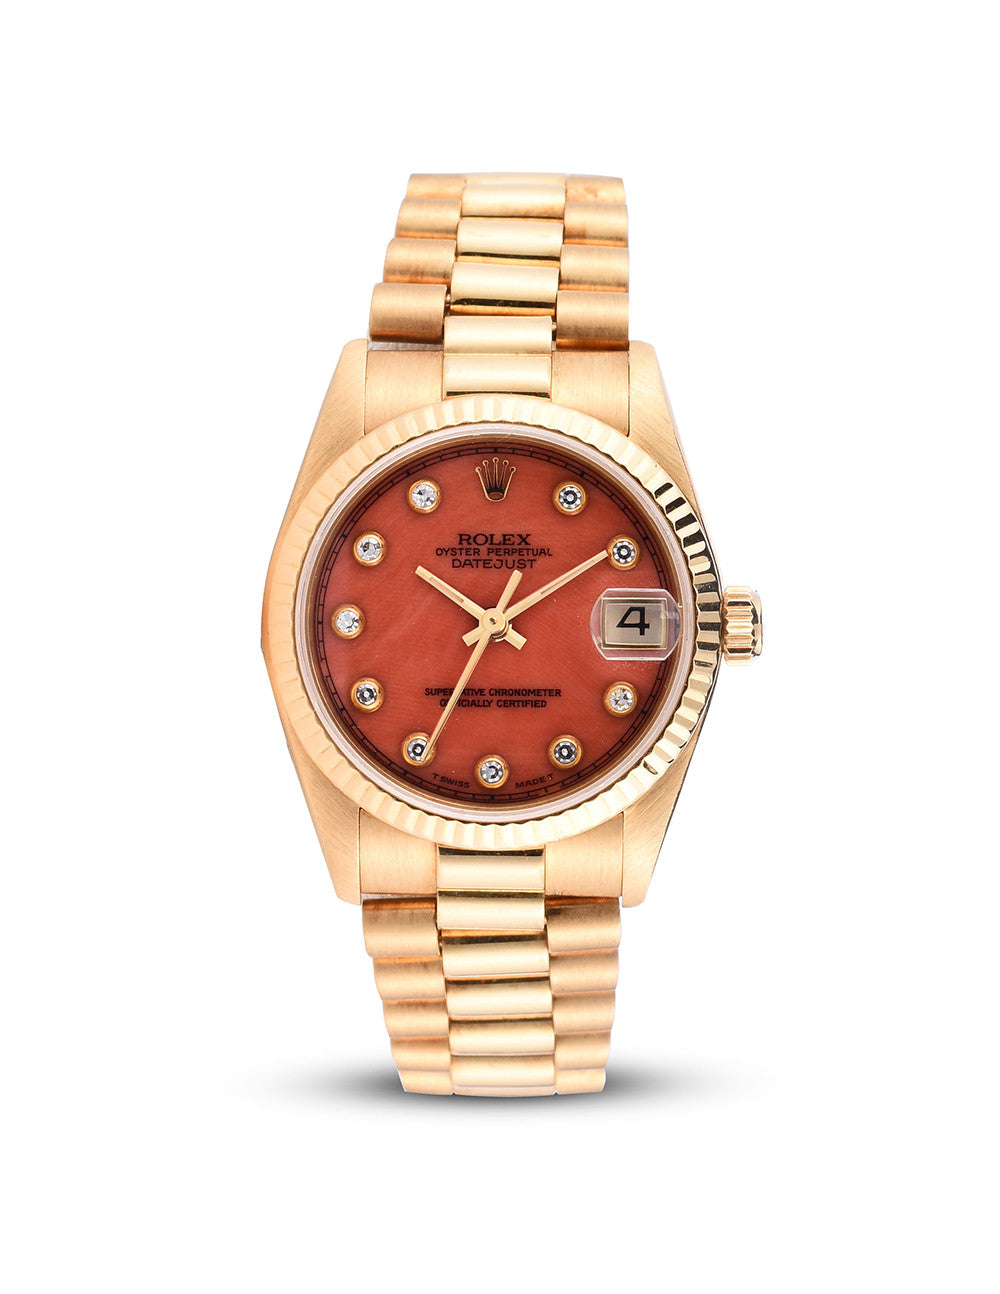 18K Midsize Oyster Perpetual Datejust President Watch